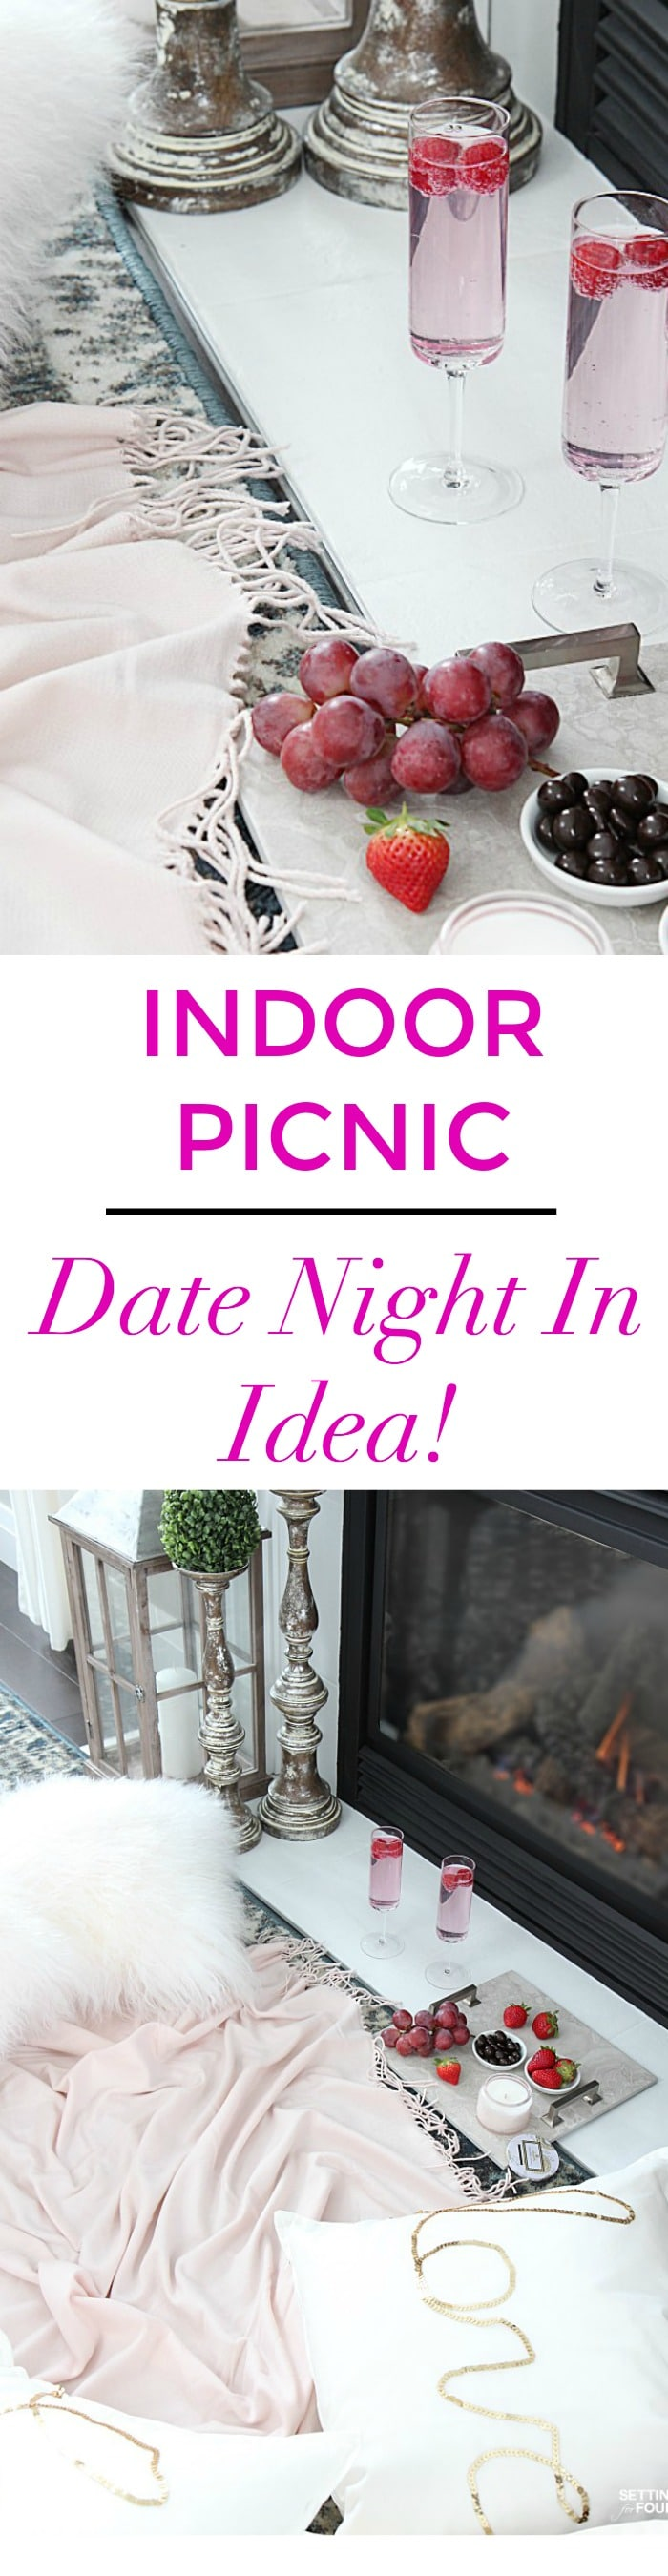 Indoor date ideas in Perth